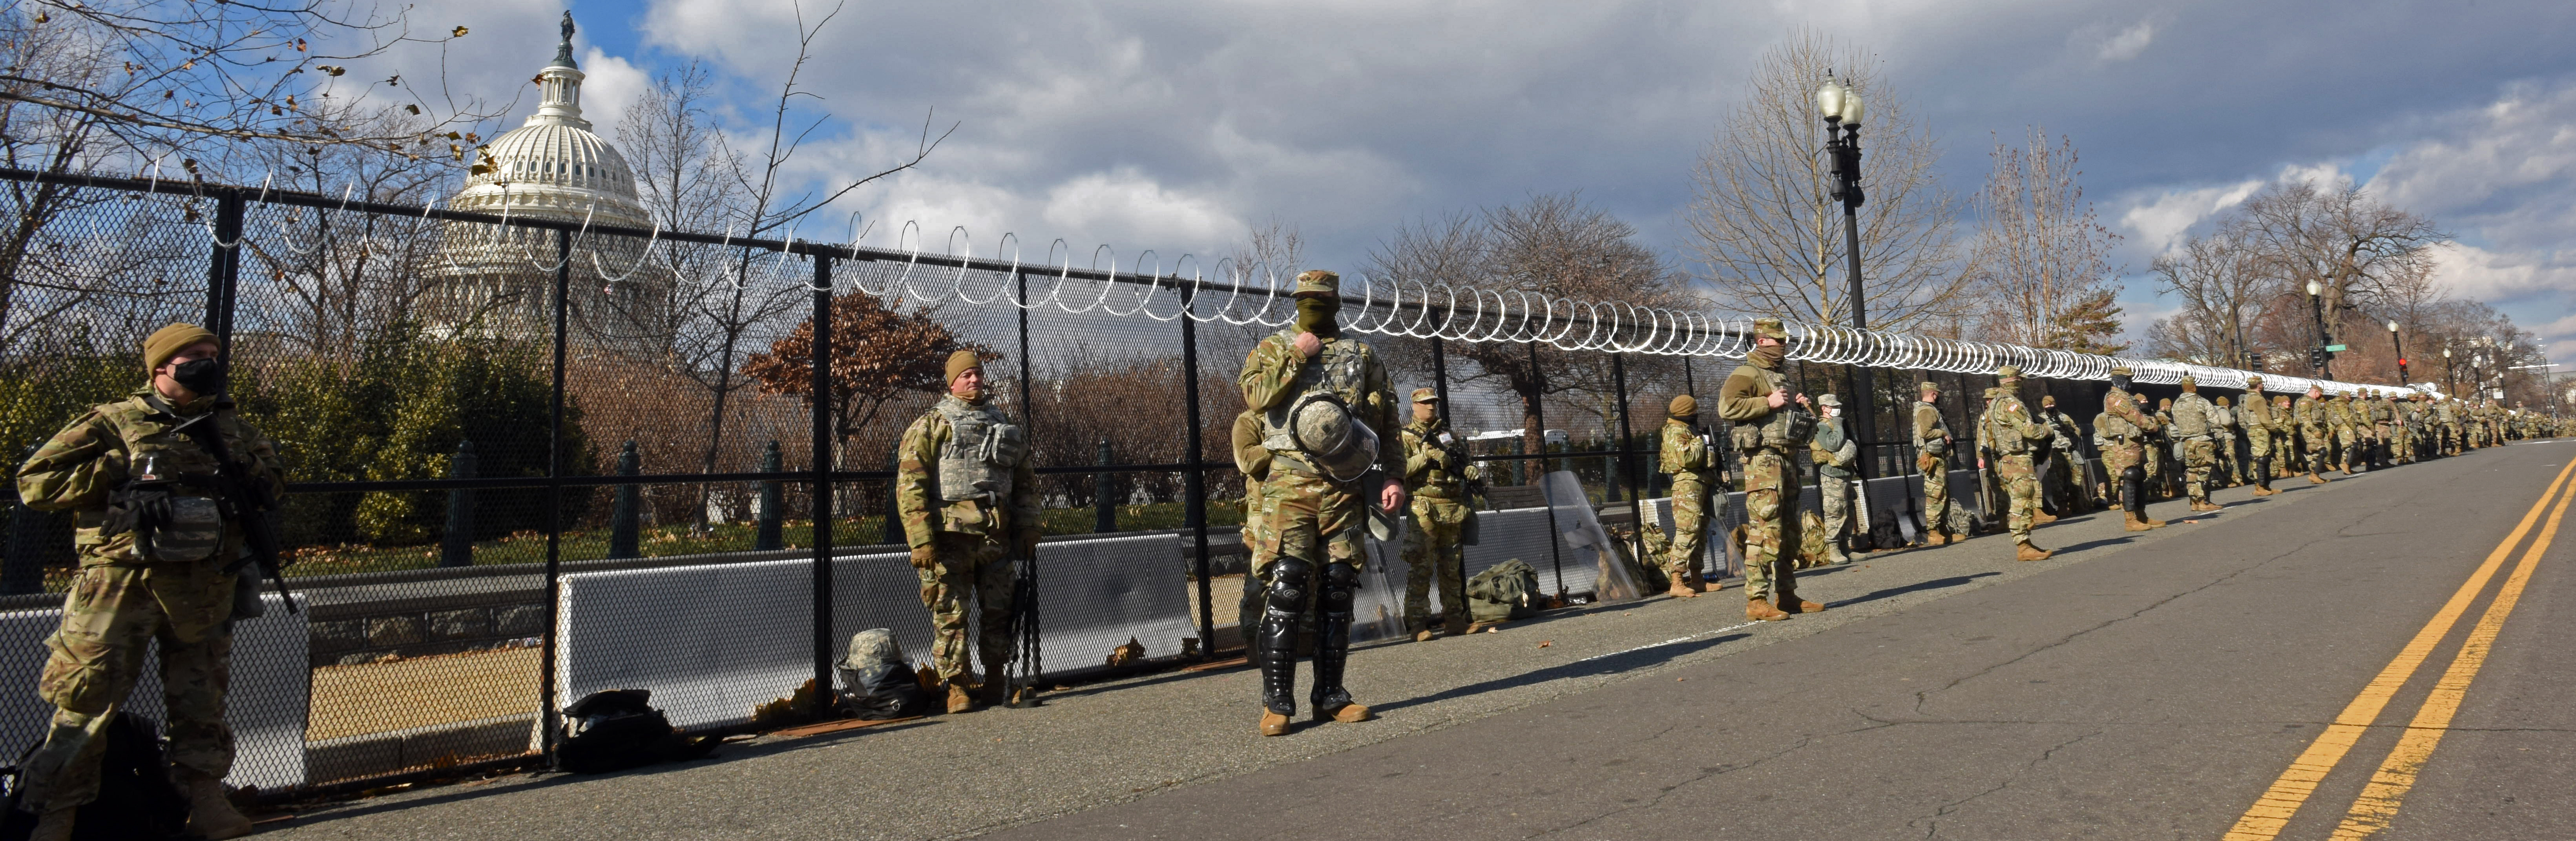 National Guard security mission at U.S. Capitol concludes